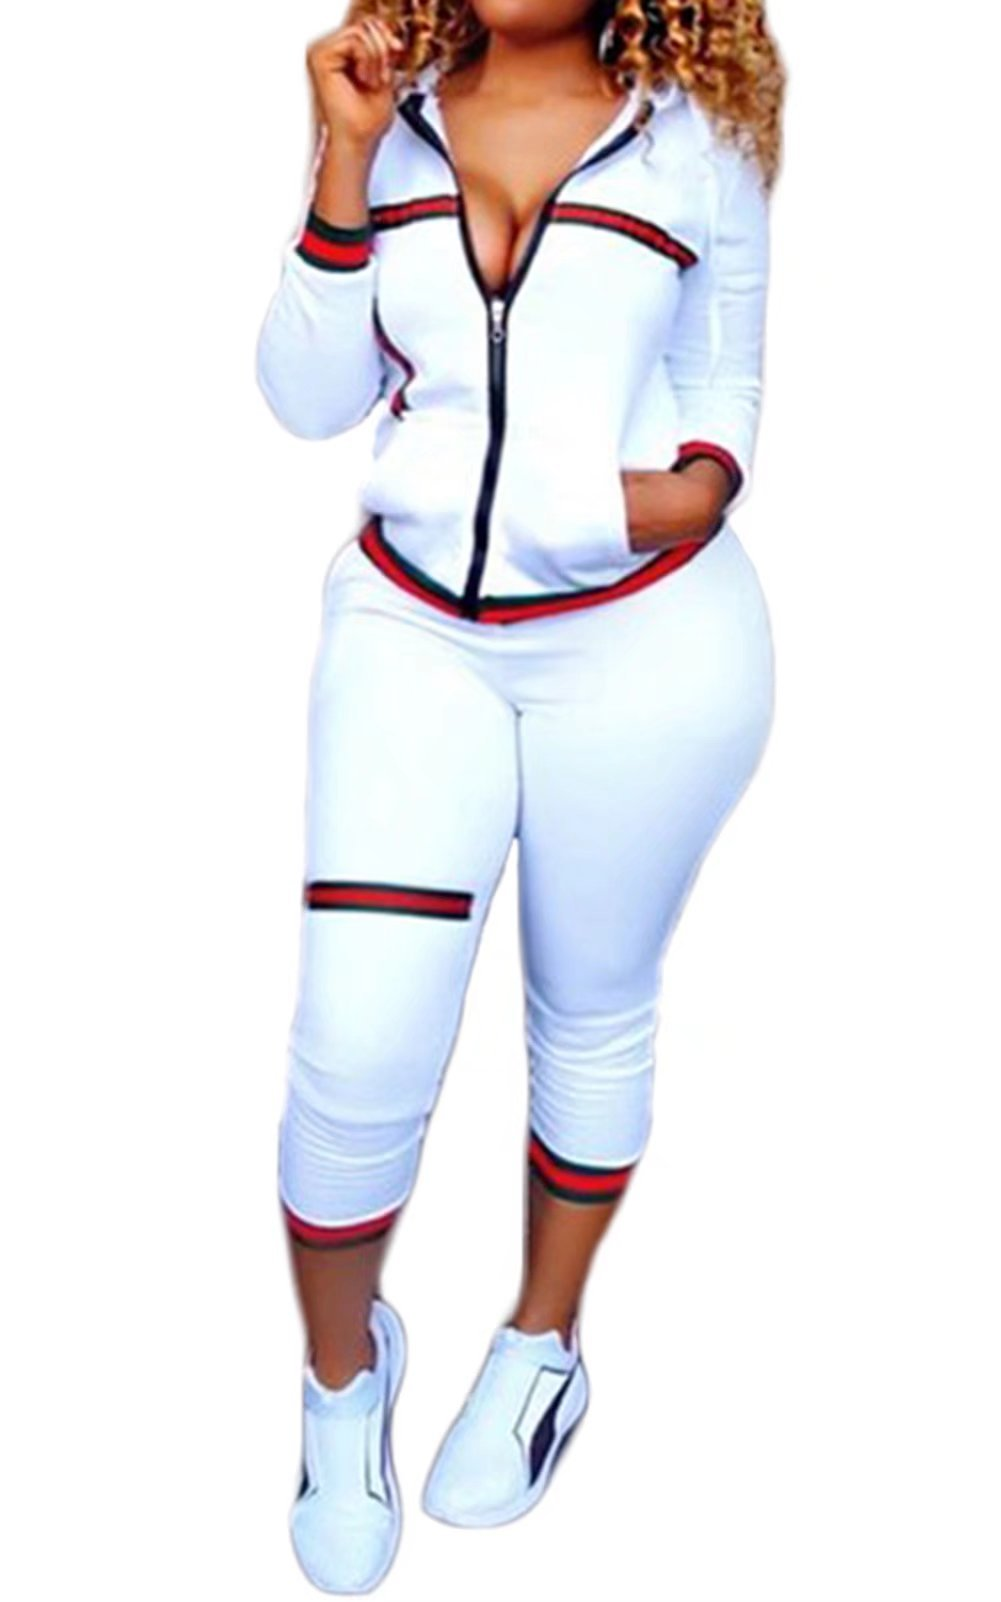 FOUNDO 2 Piece Outfits For Women Tracksuit Zip-Up Jacket and Pants Jogging Set White XL